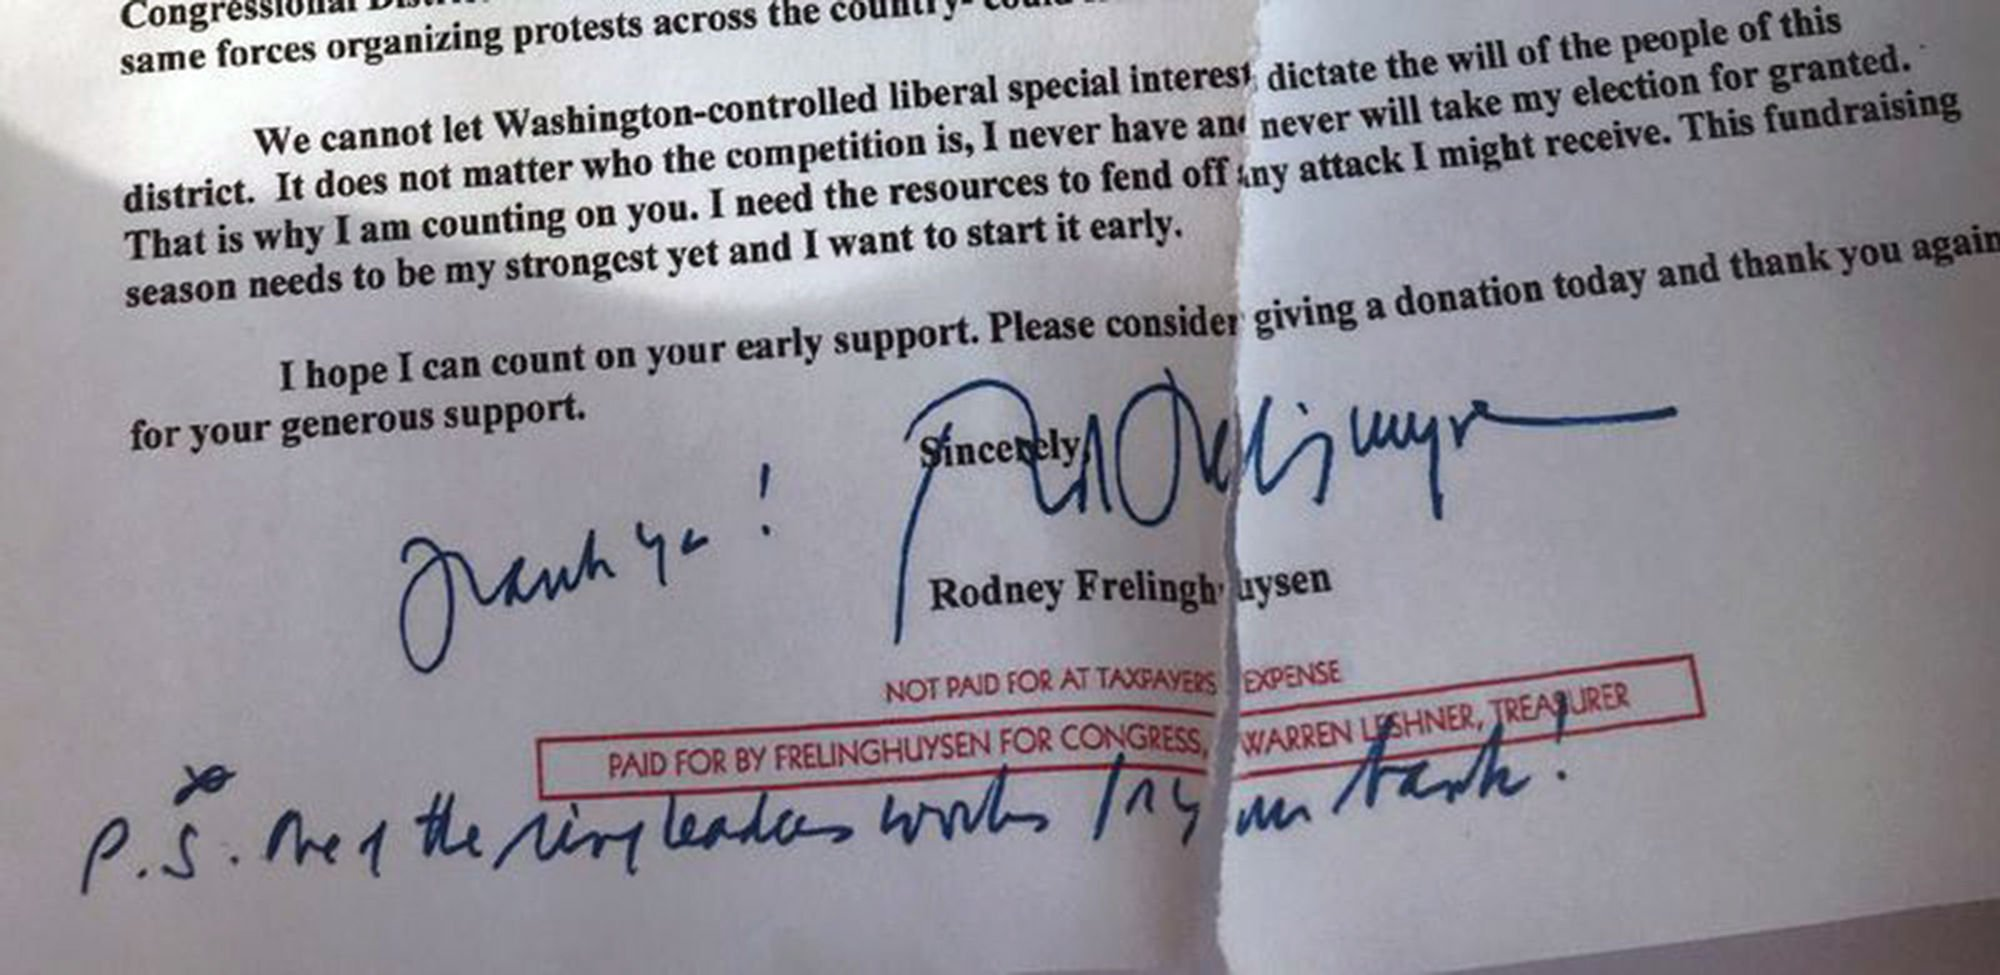 Congressman Rodney Frelinghuysen, R-11, singled out a local woman as a member of an activist group opposing him to her employer's board of directors in March